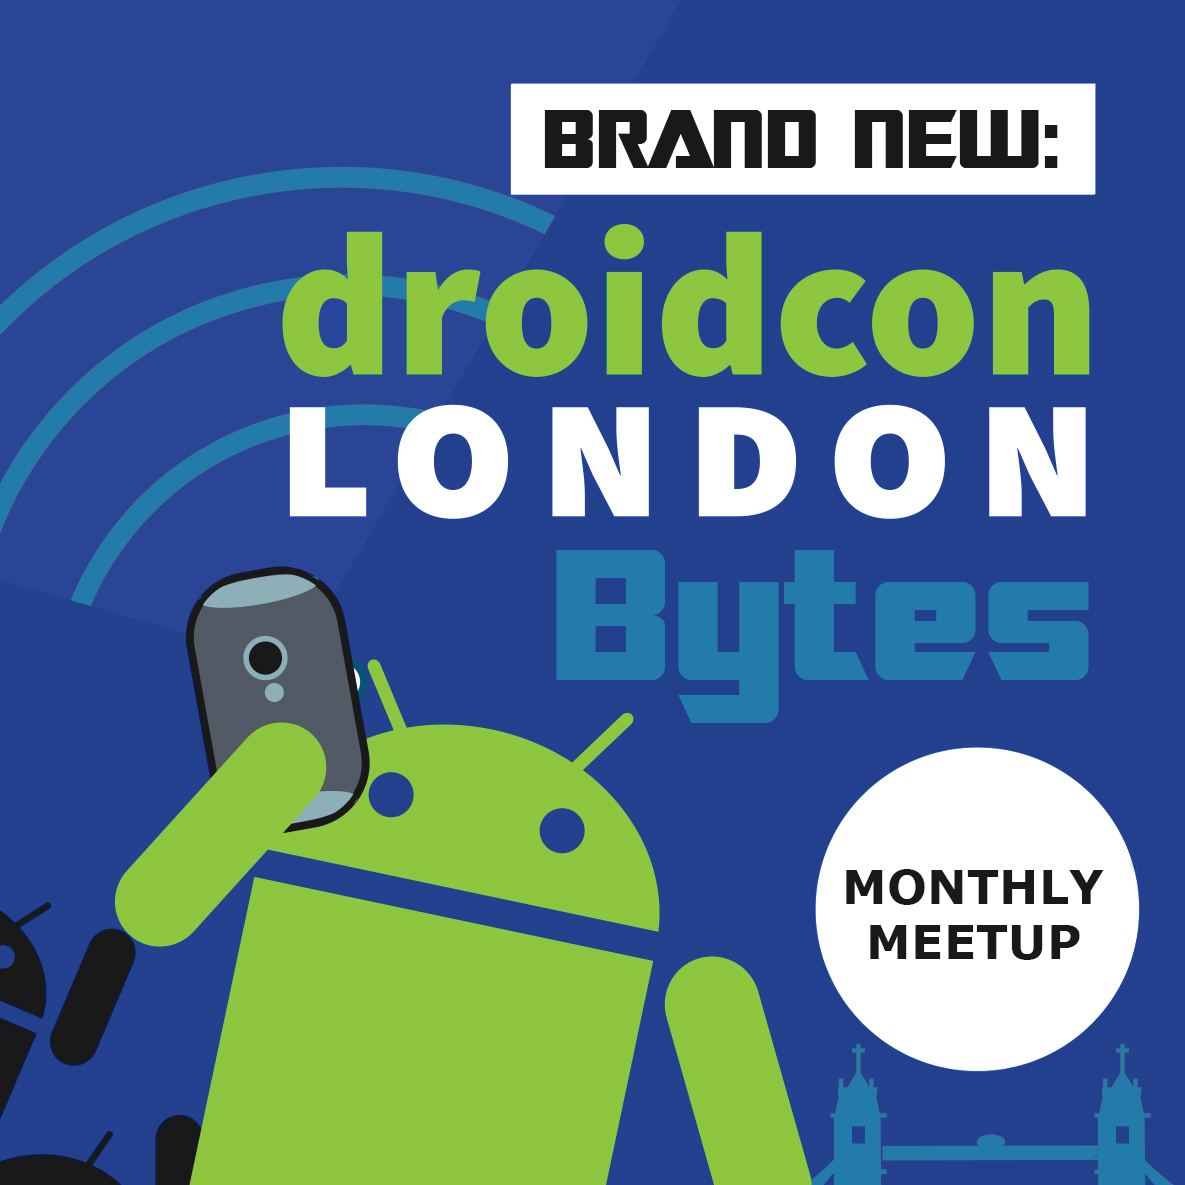 droidcon London 2016 | 27th - 28th Oct 2016 | London